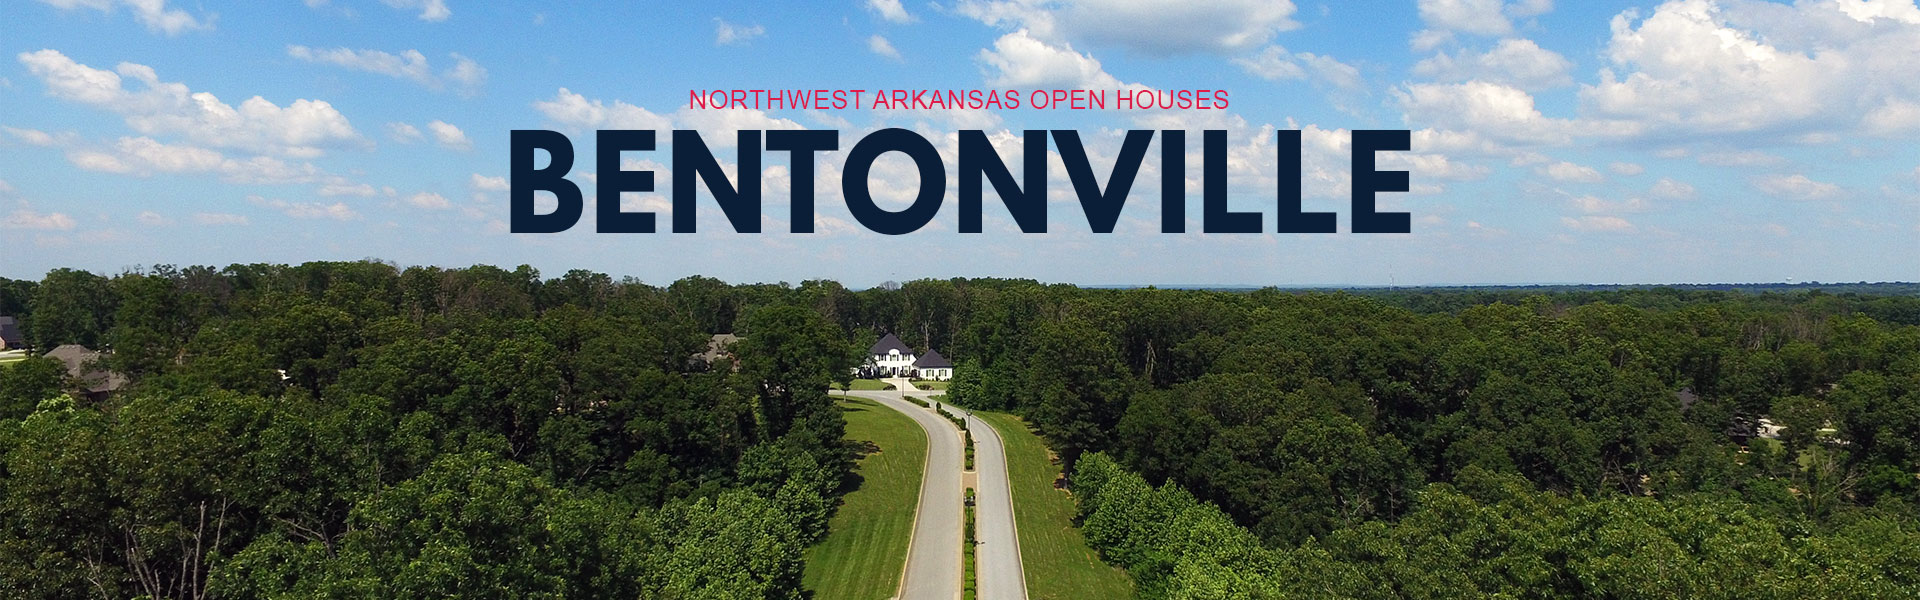 Bentonville Arkansas Open Houses